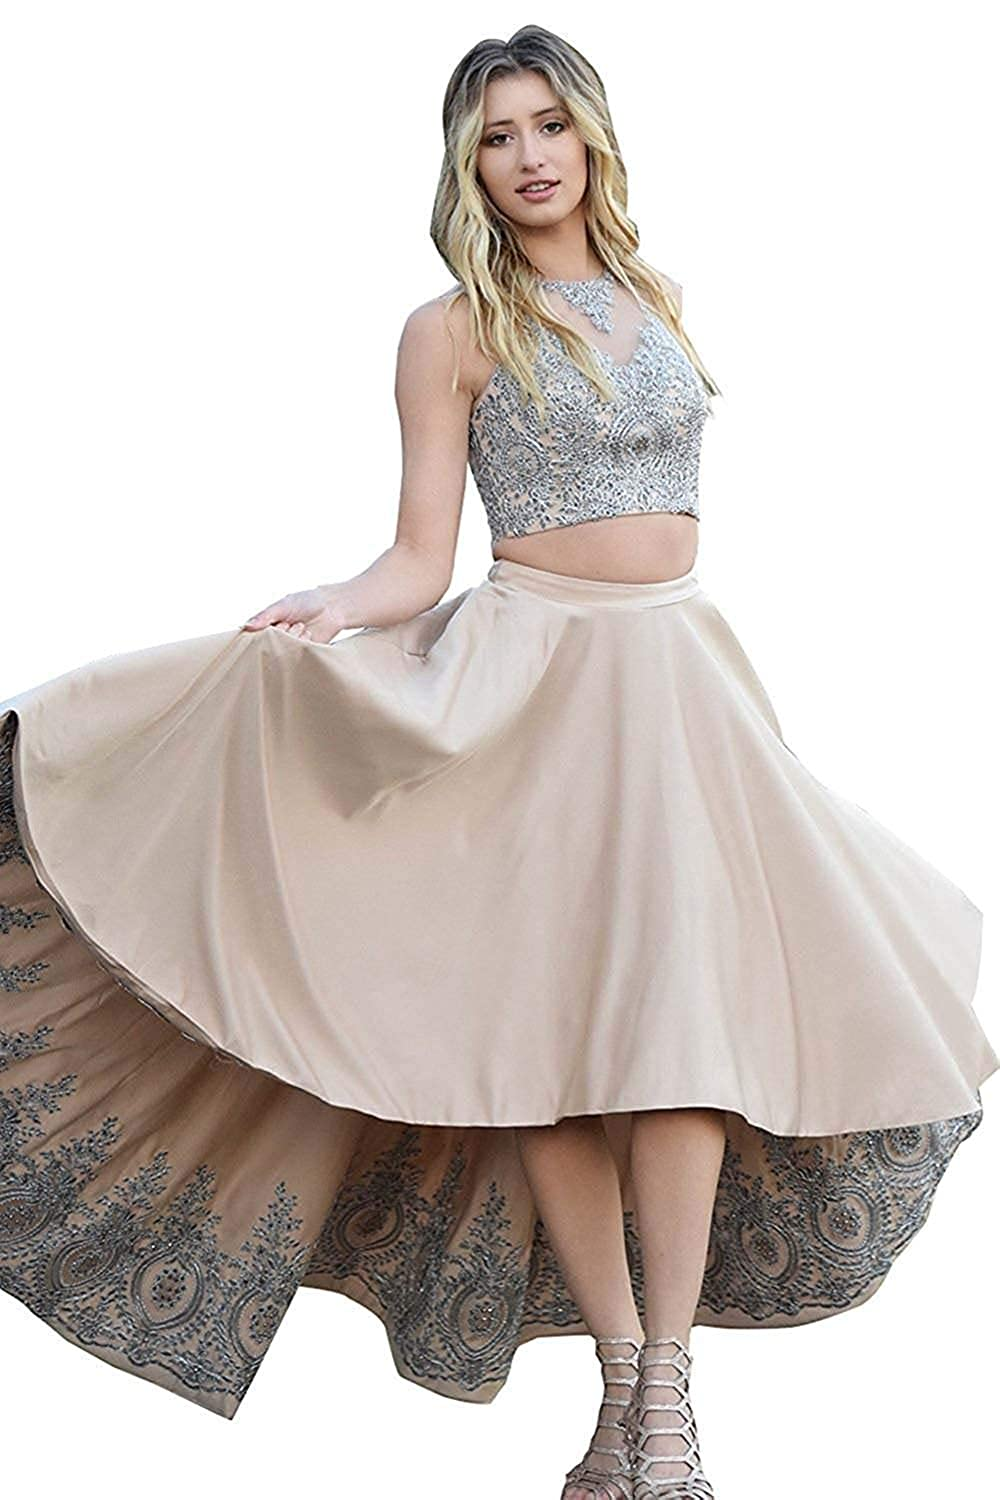 Champagne Miao Duo Women's High Low Lace Beads Prom Party Dresses 2 Pieces Long Formal Homecoming Ball Gowns PM121